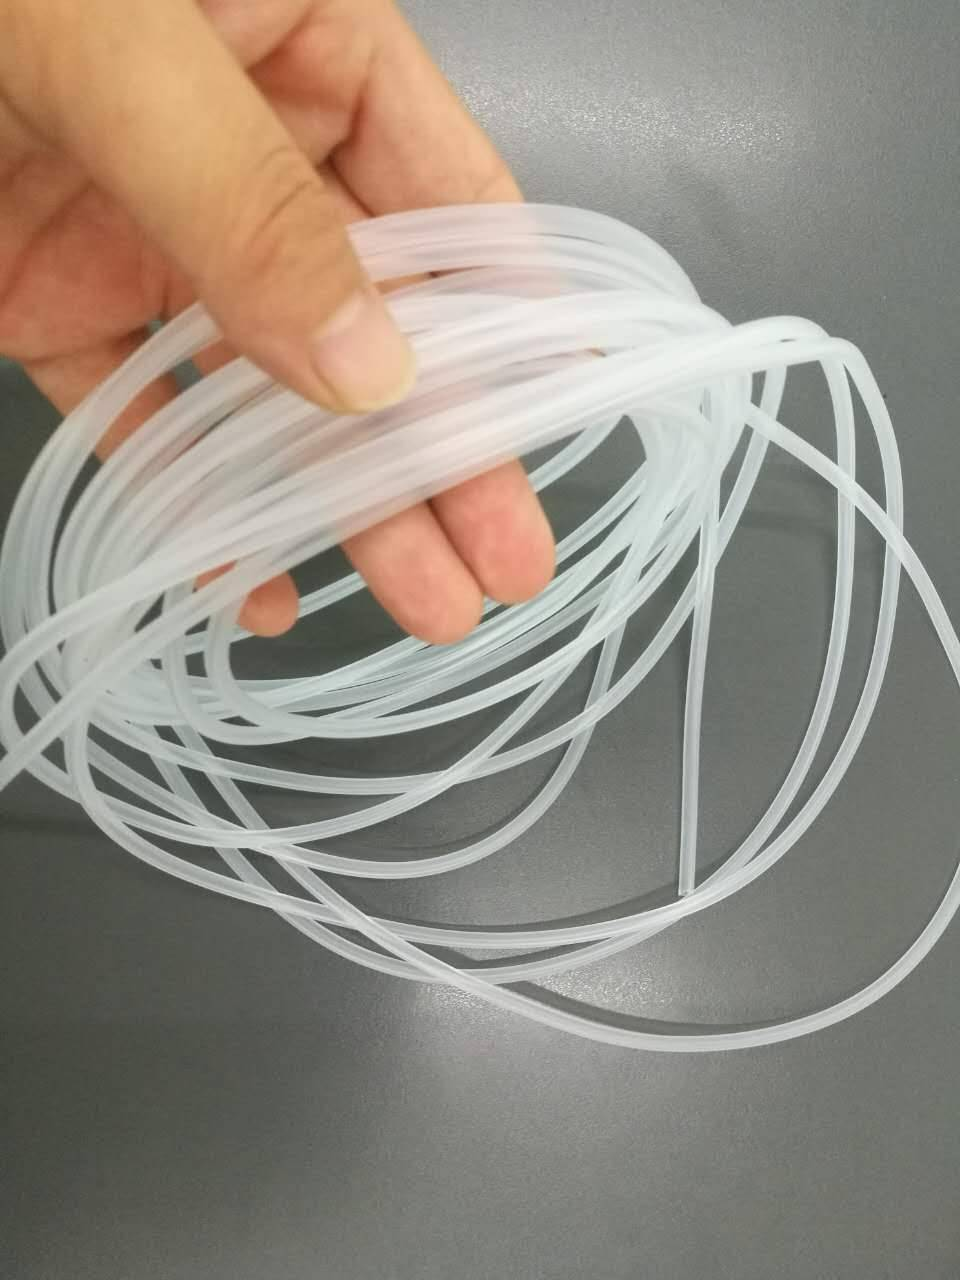 Medical grade silicone for catheter